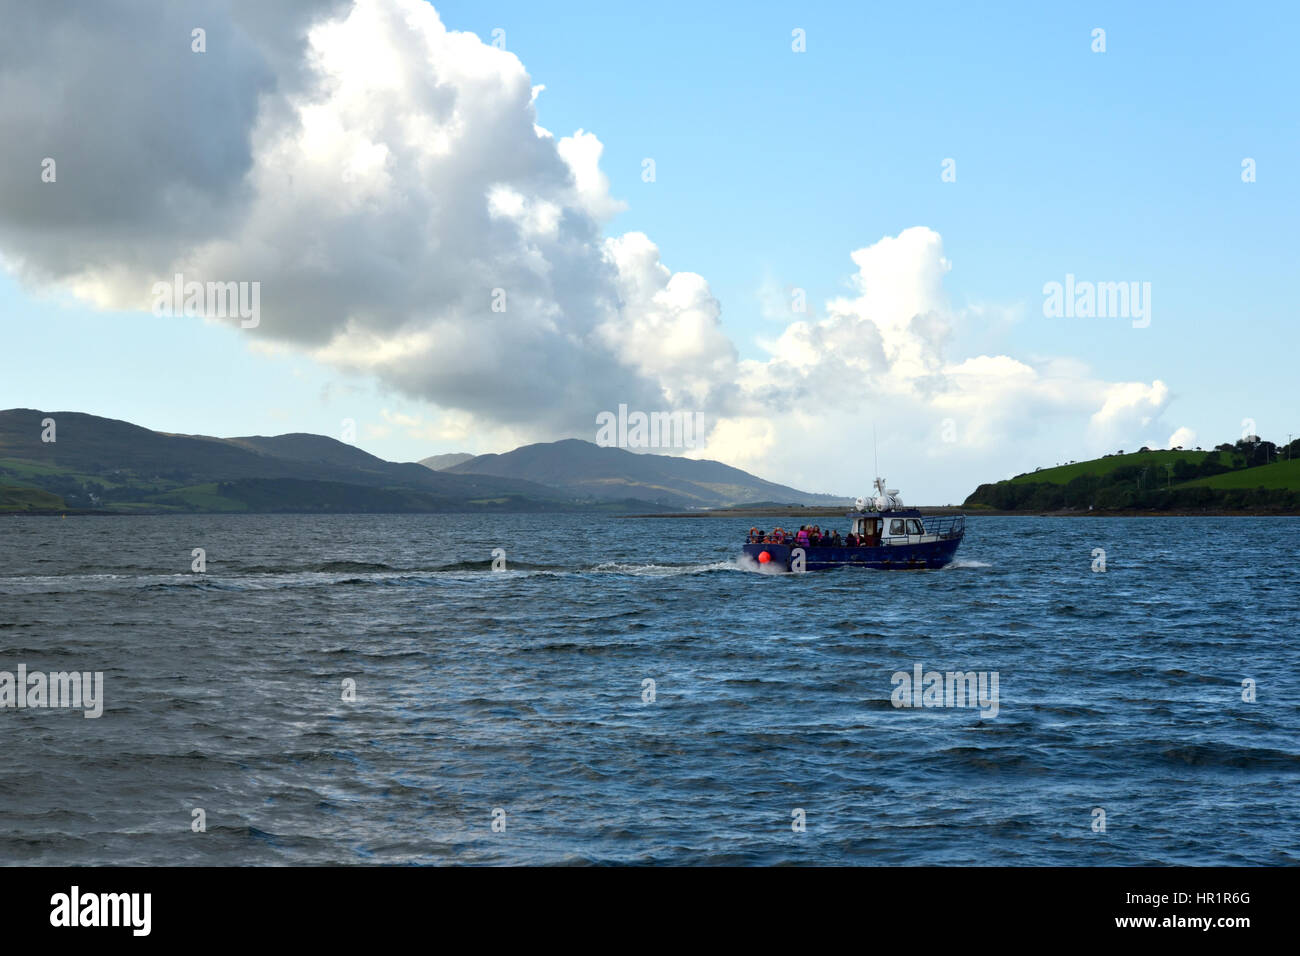 The Whiddy Island Ferry en route to Whiddy with Sheep's Head peninsula in the background Stock Photo